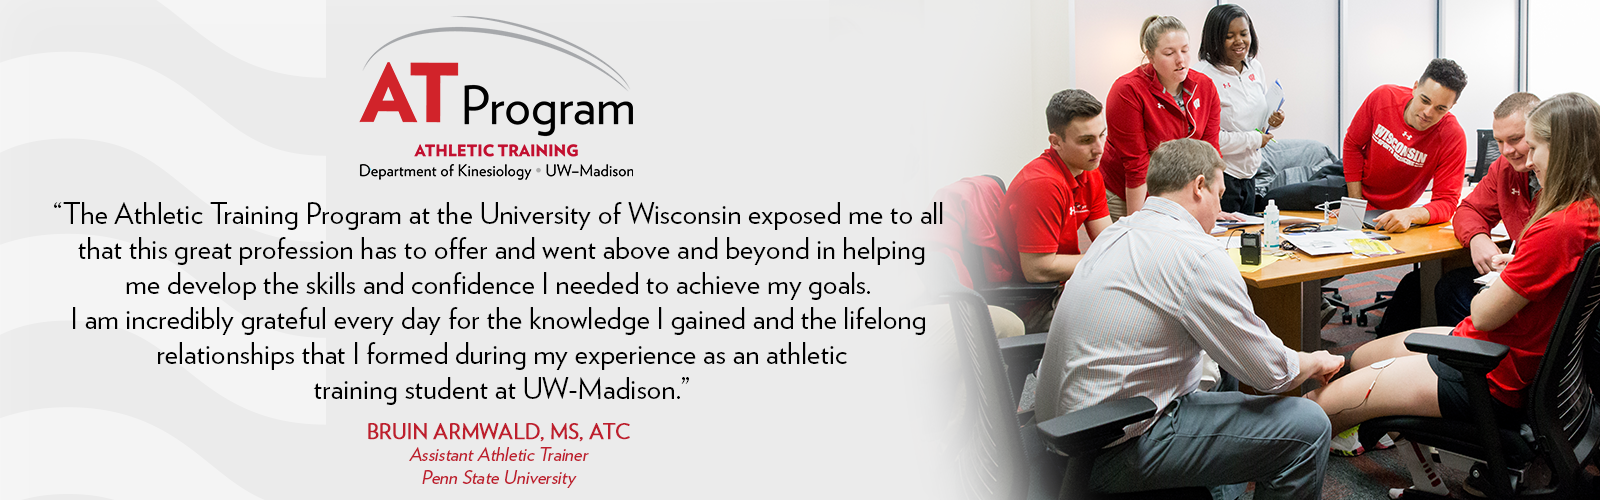 Bruin Armwald provides quote about experience in UW-Madison AT Program